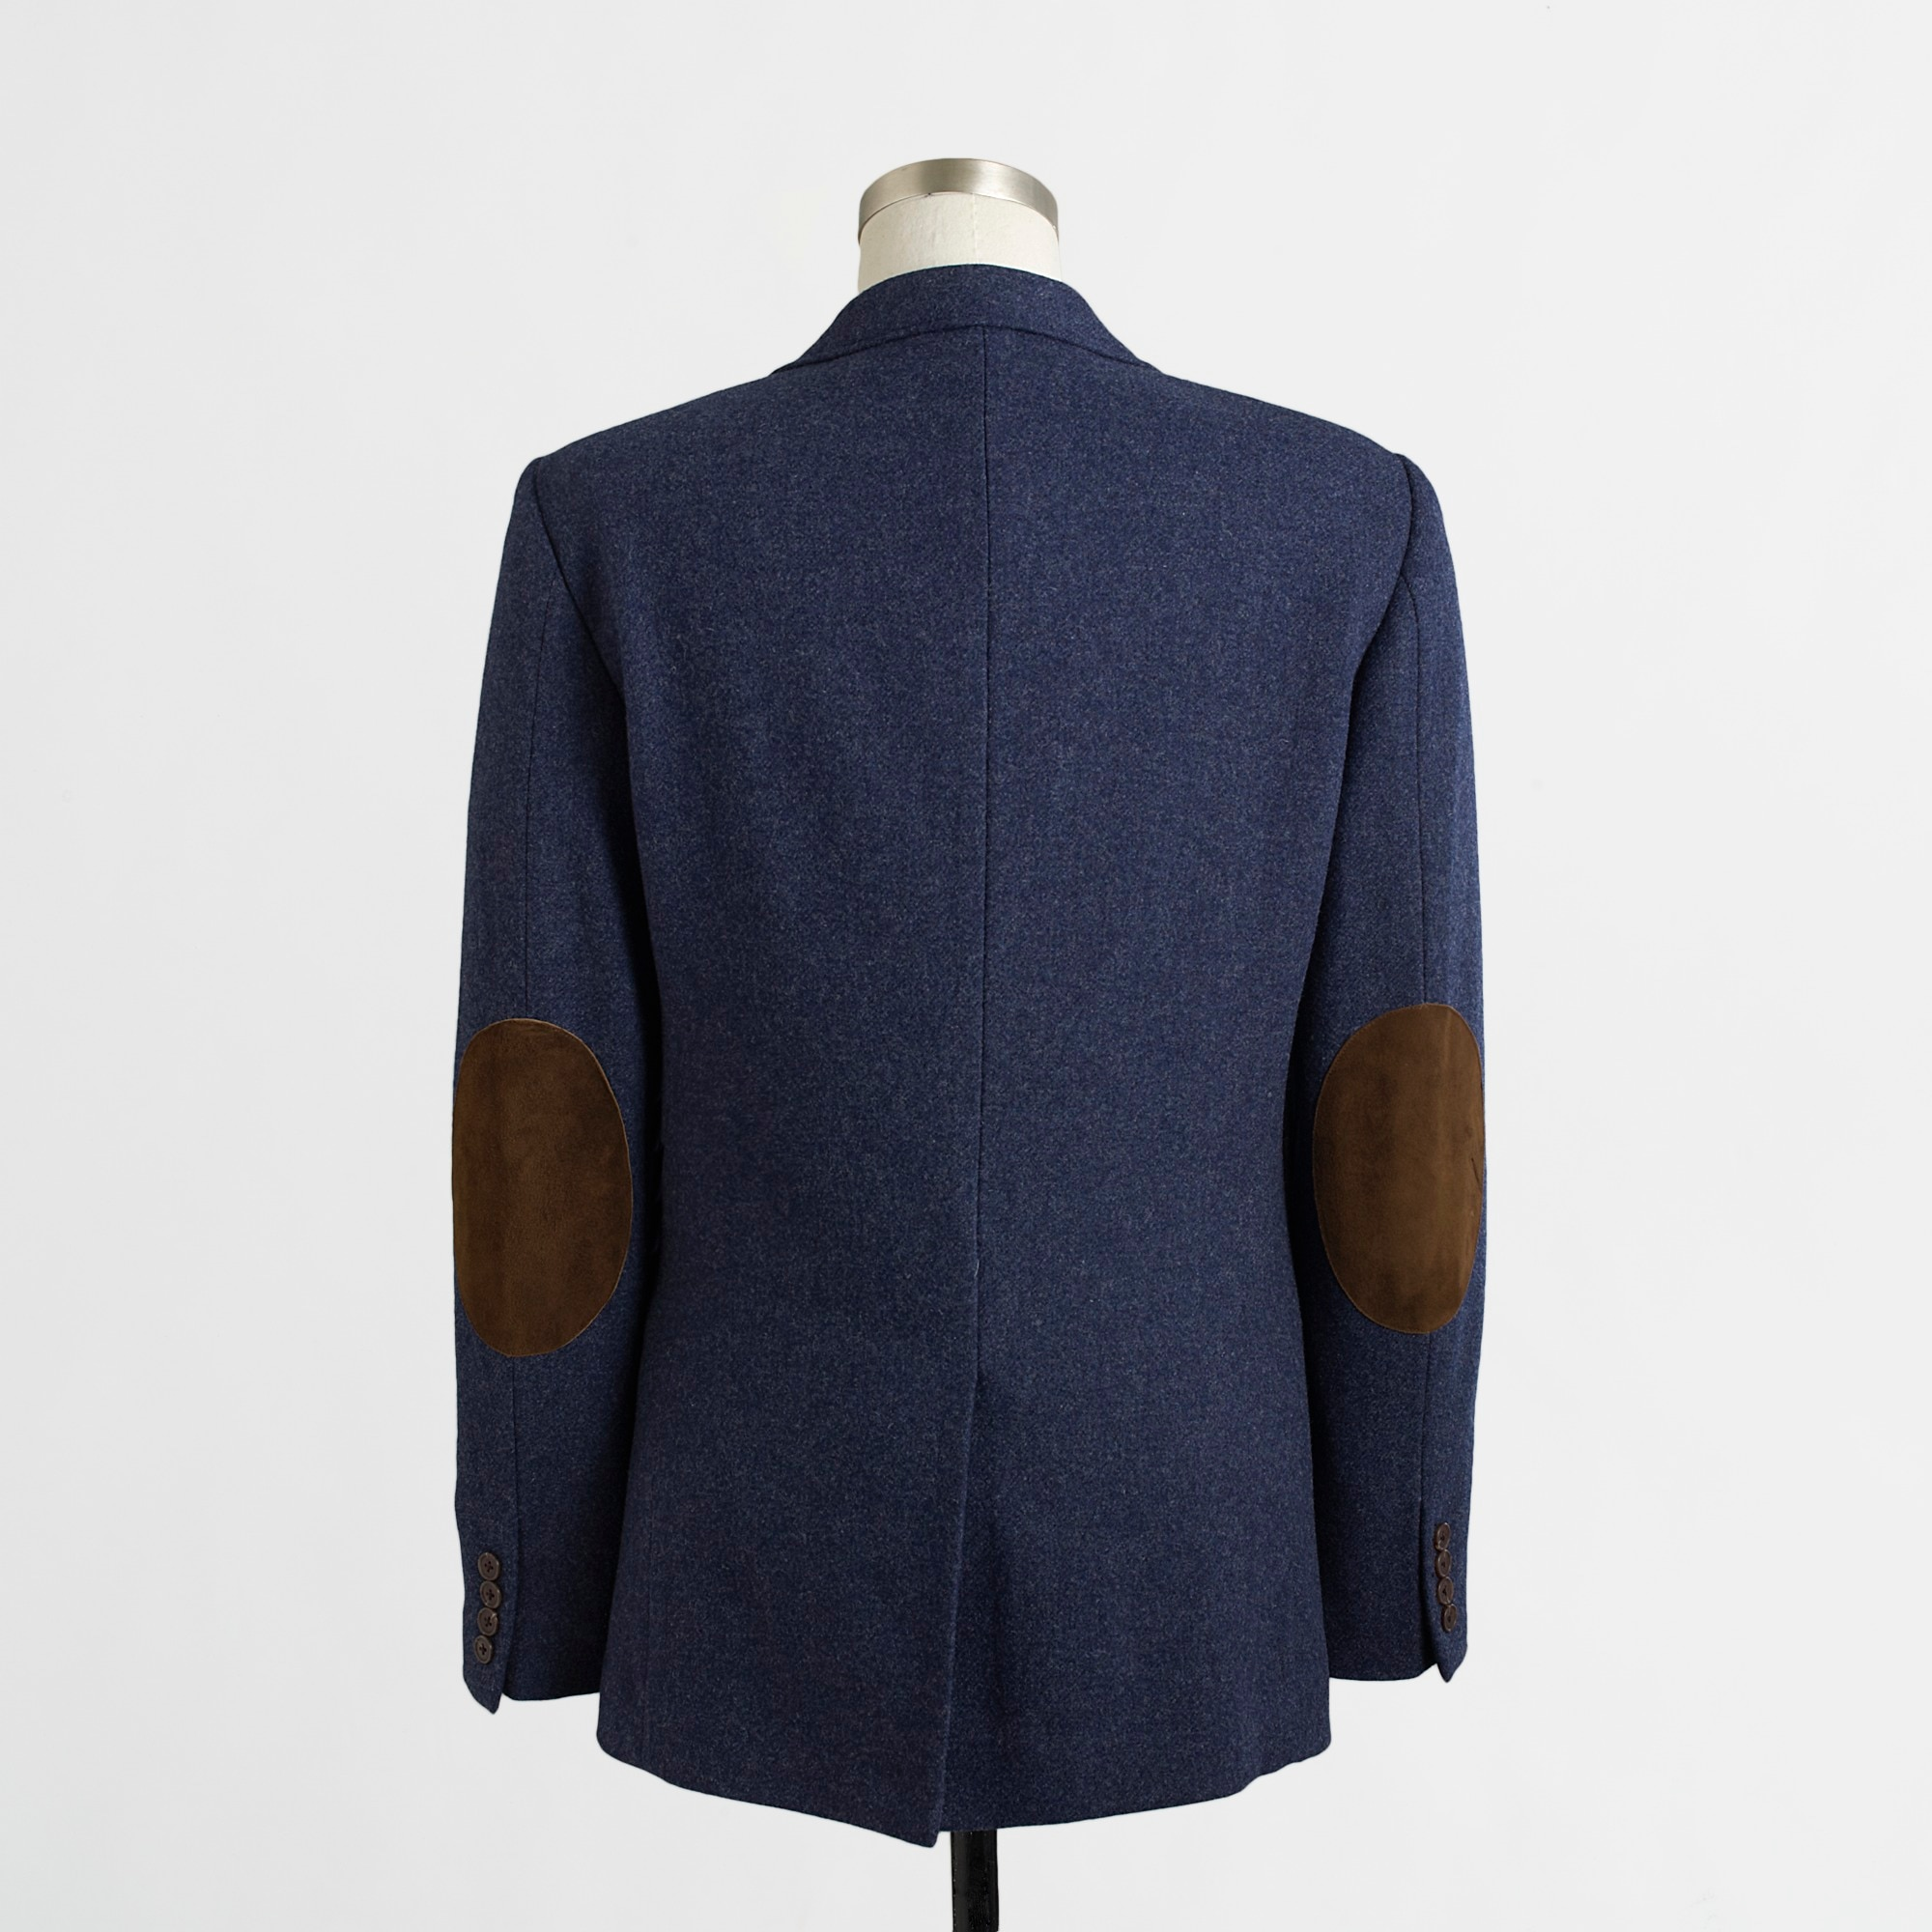 Image 2 for Thompson elbow-patch blazer in tweed wool